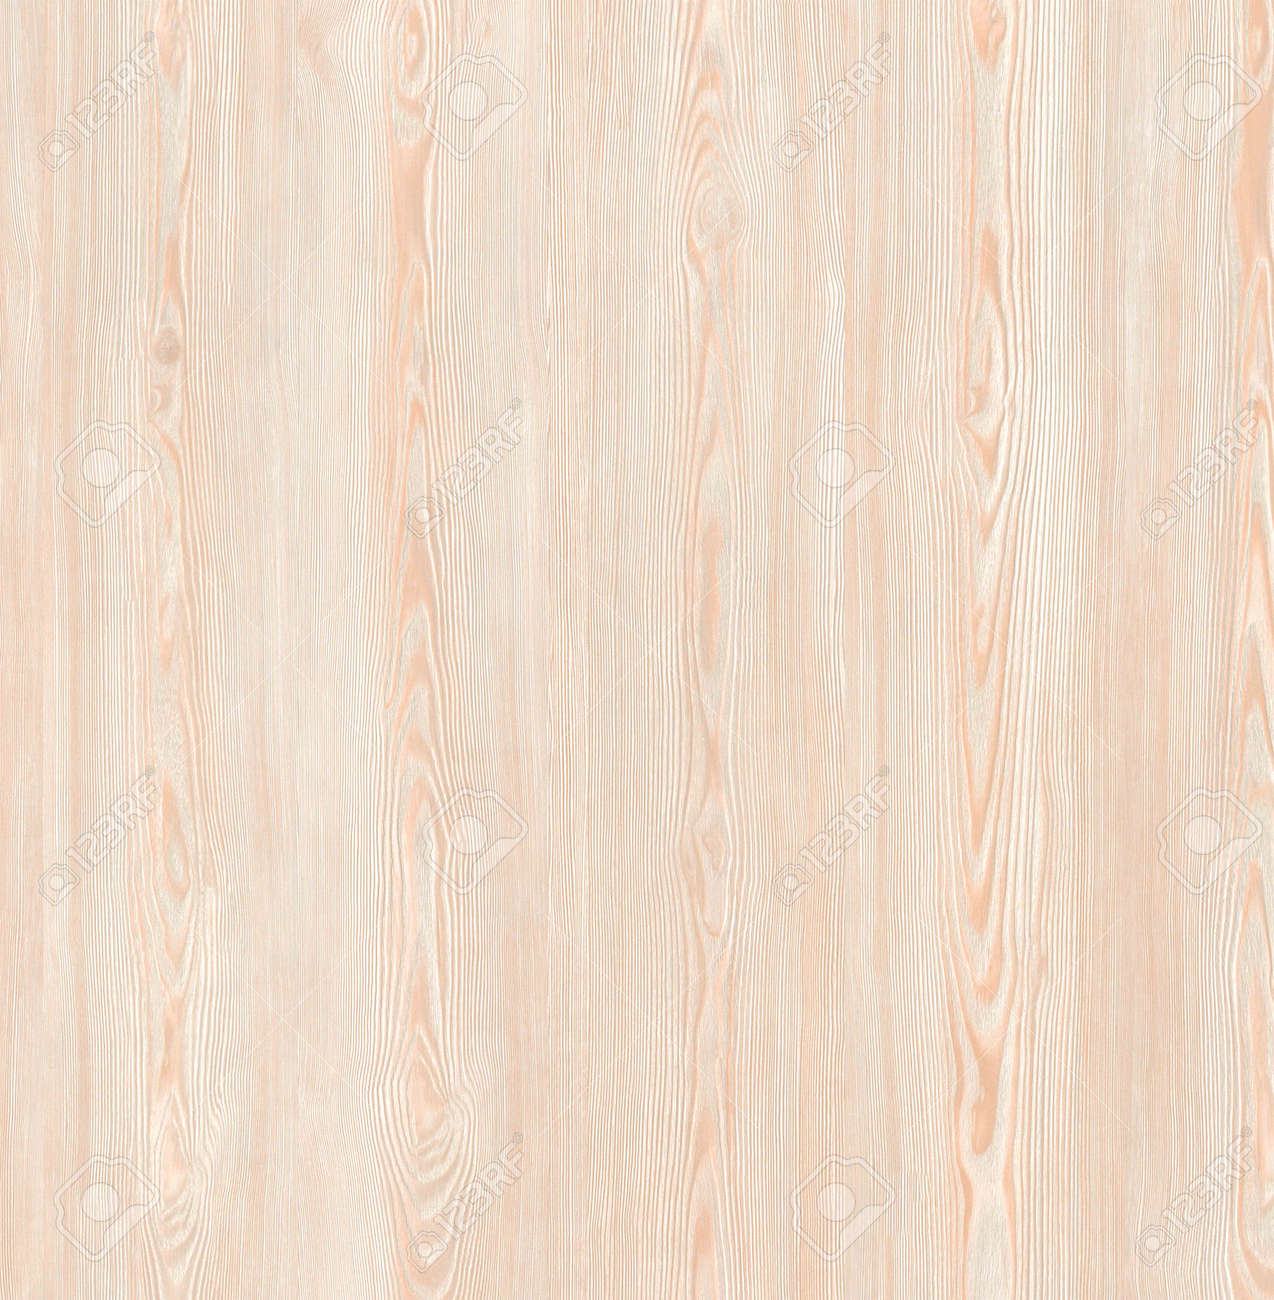 Italian Marble Slab Pattern And Texture Of Ceramic Tiles Marble Stock Photo Picture And Royalty Free Image Image 128447523